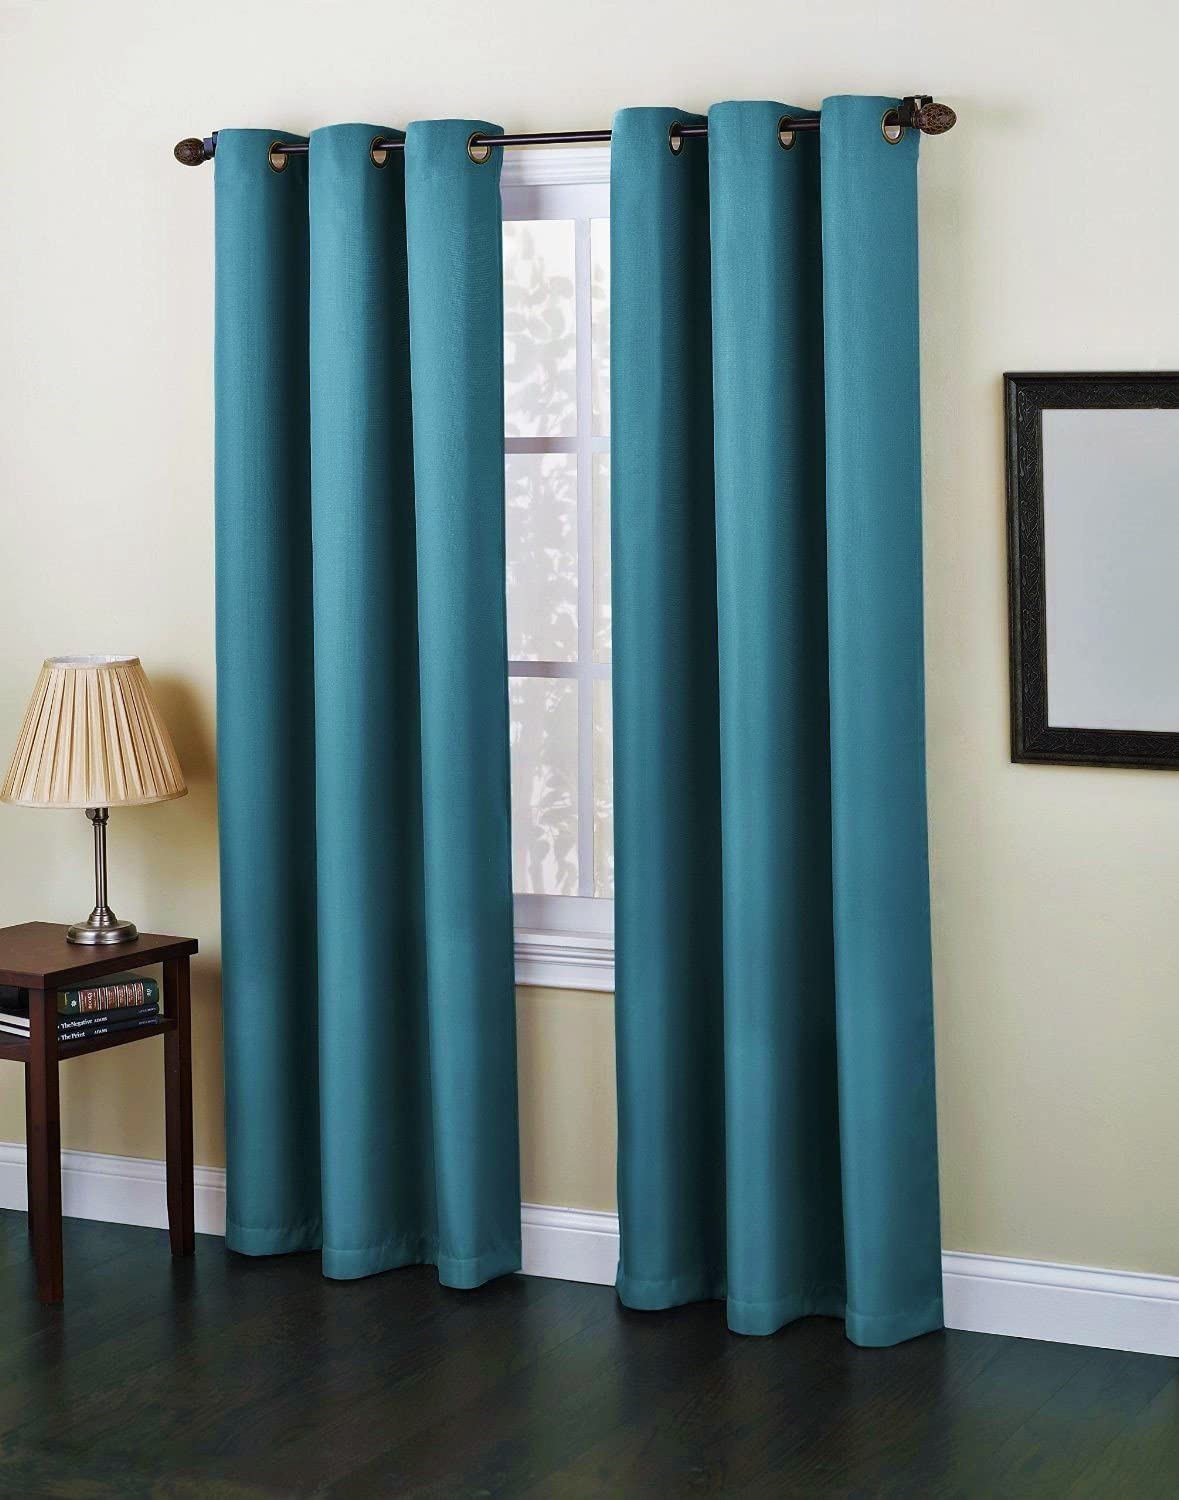 Gorgeous HomeDIFFERENT Solid Colors & Sizes (#86) 1 Panel Solid Foam Lined Blackout Jacquard Window Curtain Drapes Bronze Grommets (Turquoise, 63